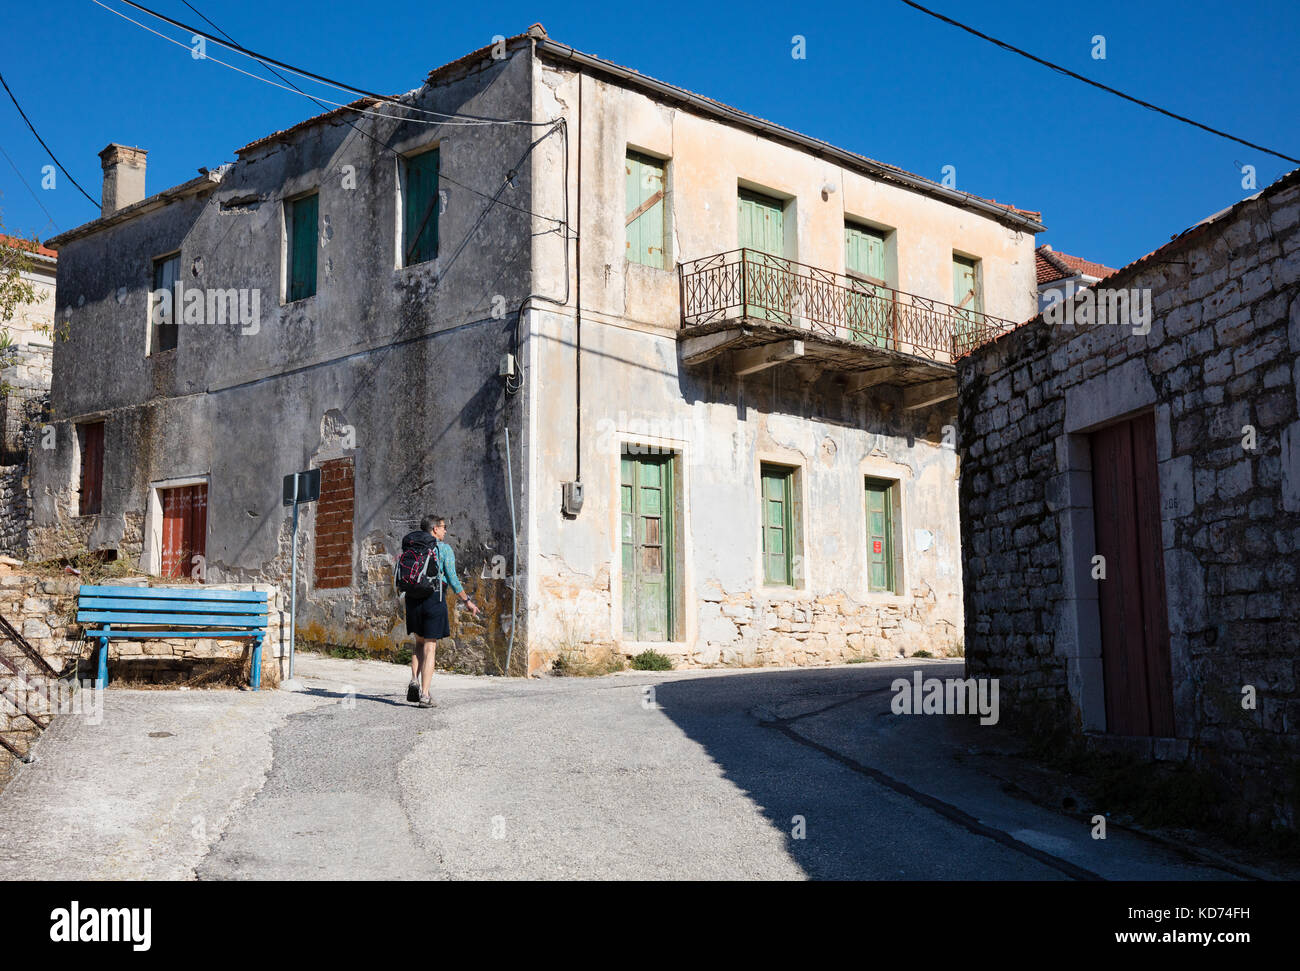 A female hiker walking past abandoned houses along a steep street in the village of Kioni on Ithaka in the Greek - Stock Image